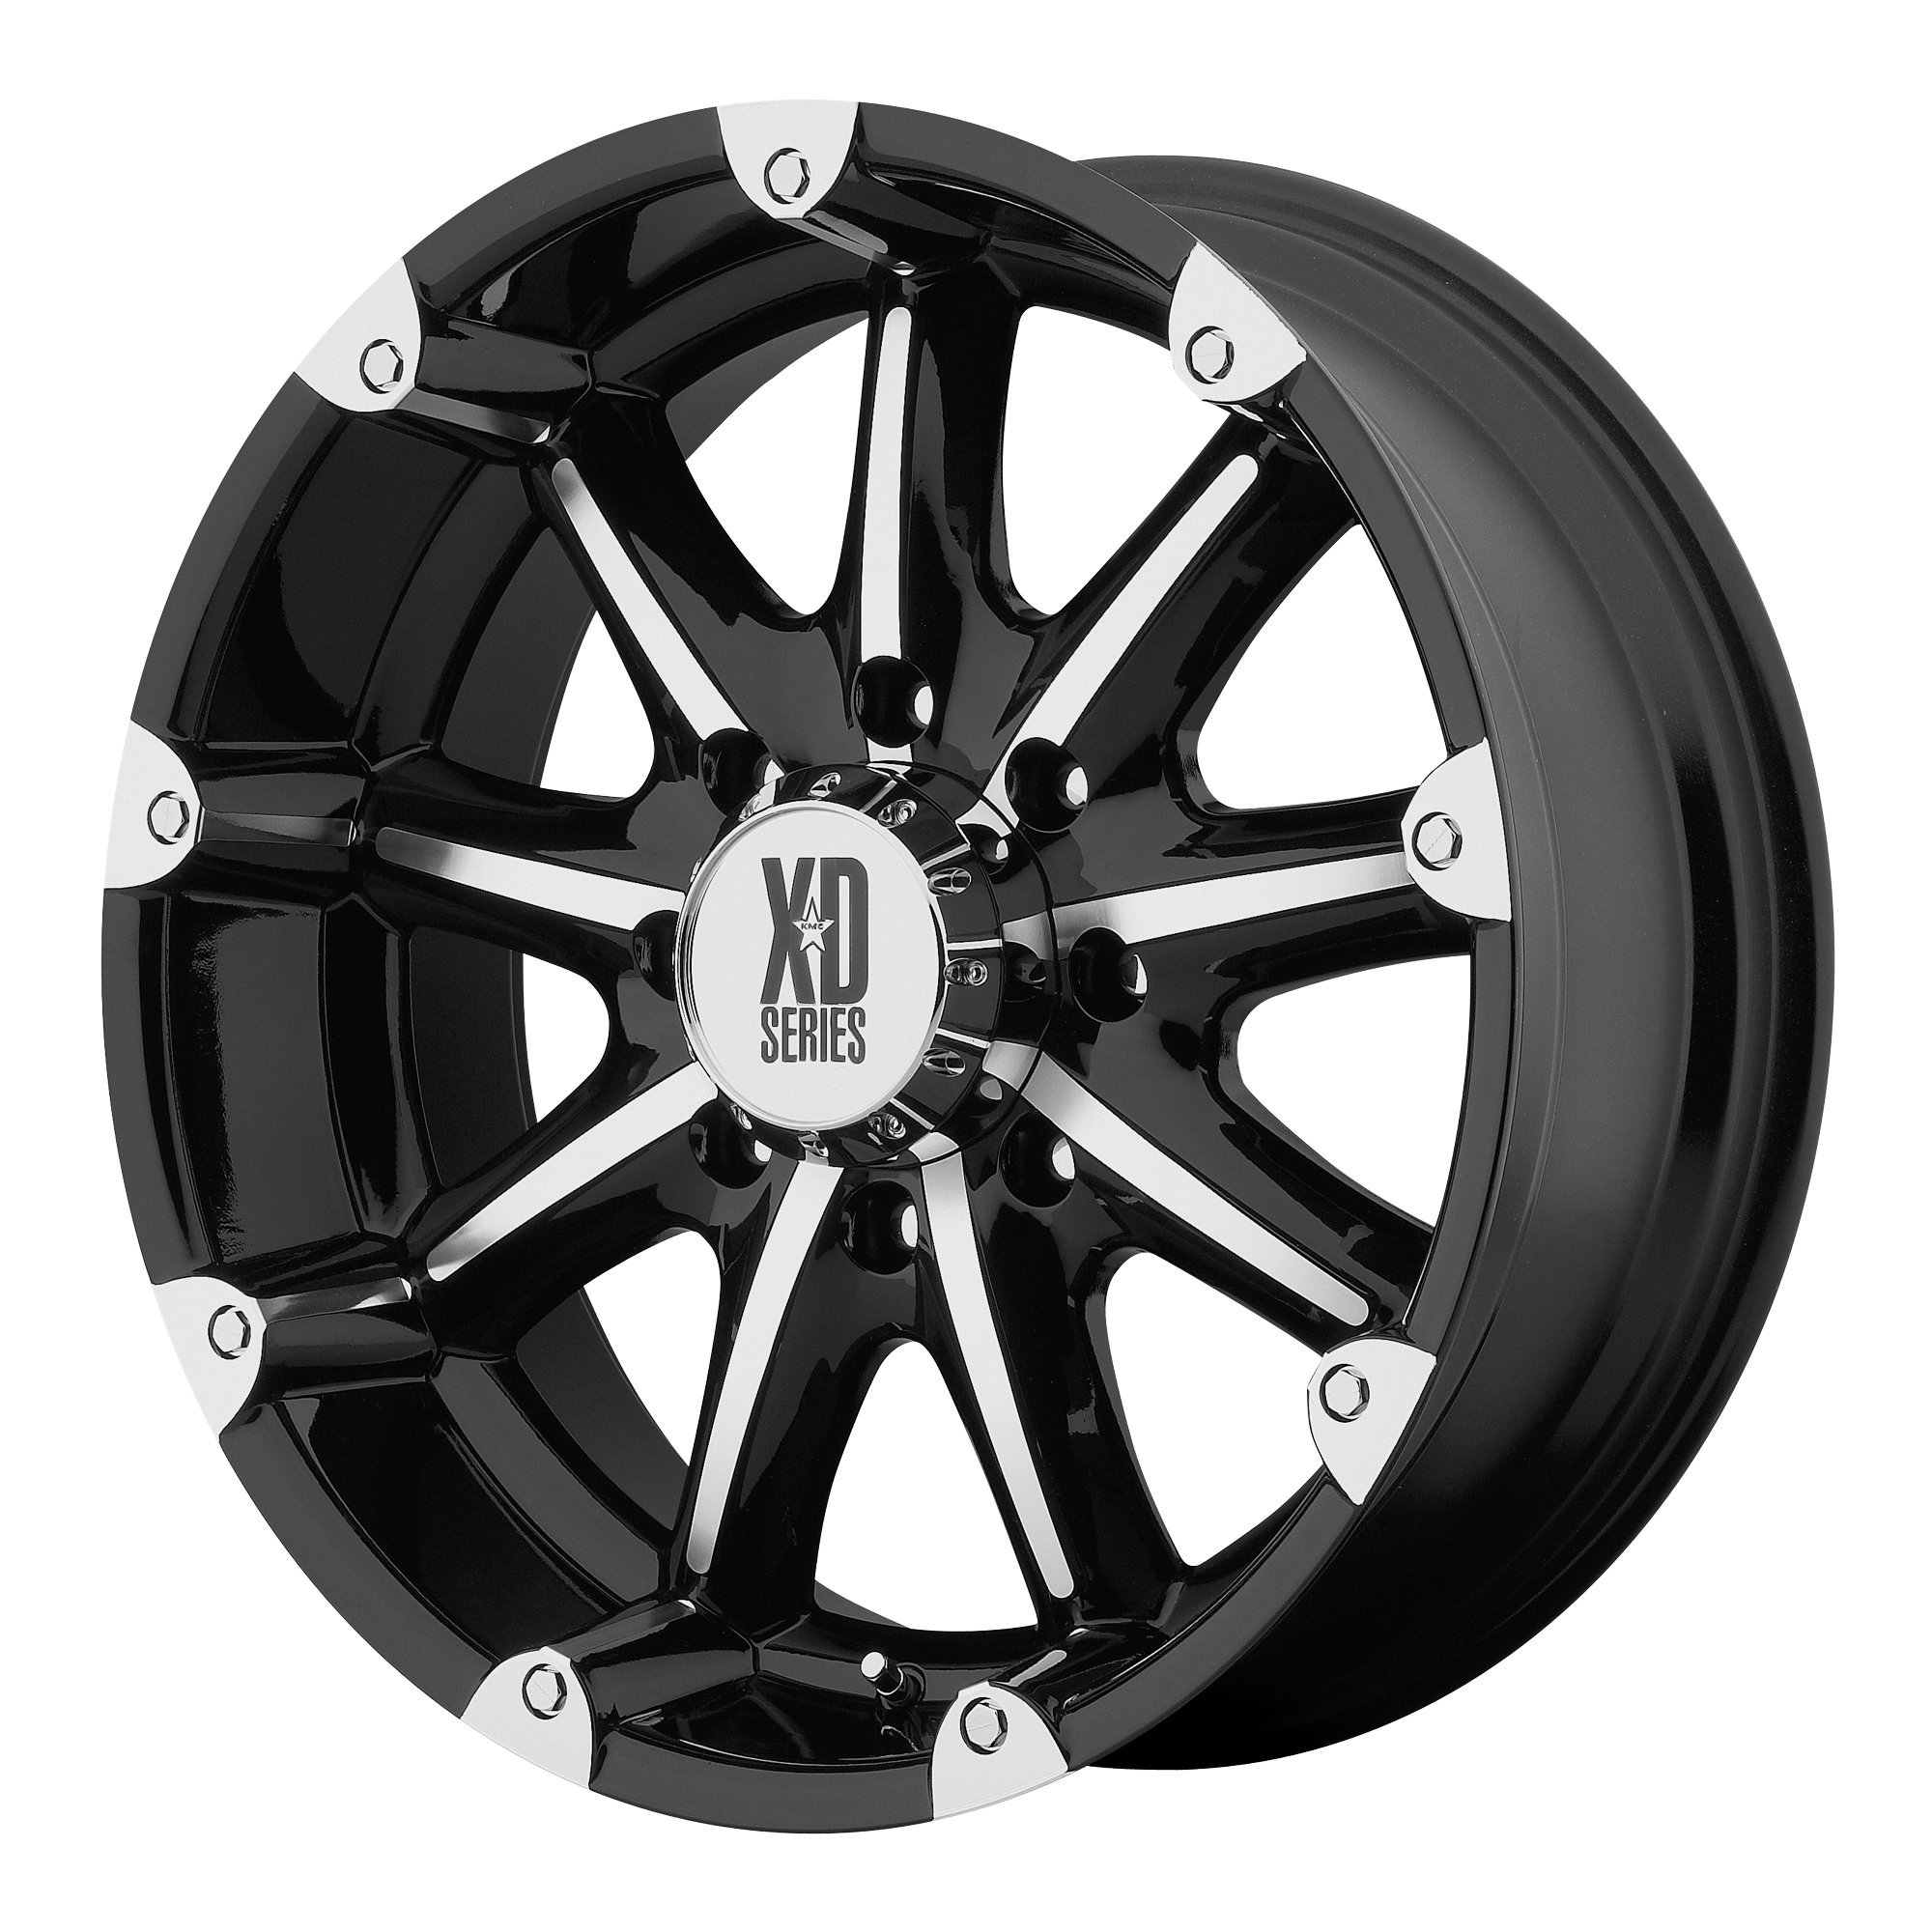 XD Series by KMC Wheels XD779 Badlands Gloss Black Wheel with Machined Accents (18x9''/8x165.1mm, +18mm offset) by XD Series by KMC Wheels (Image #1)